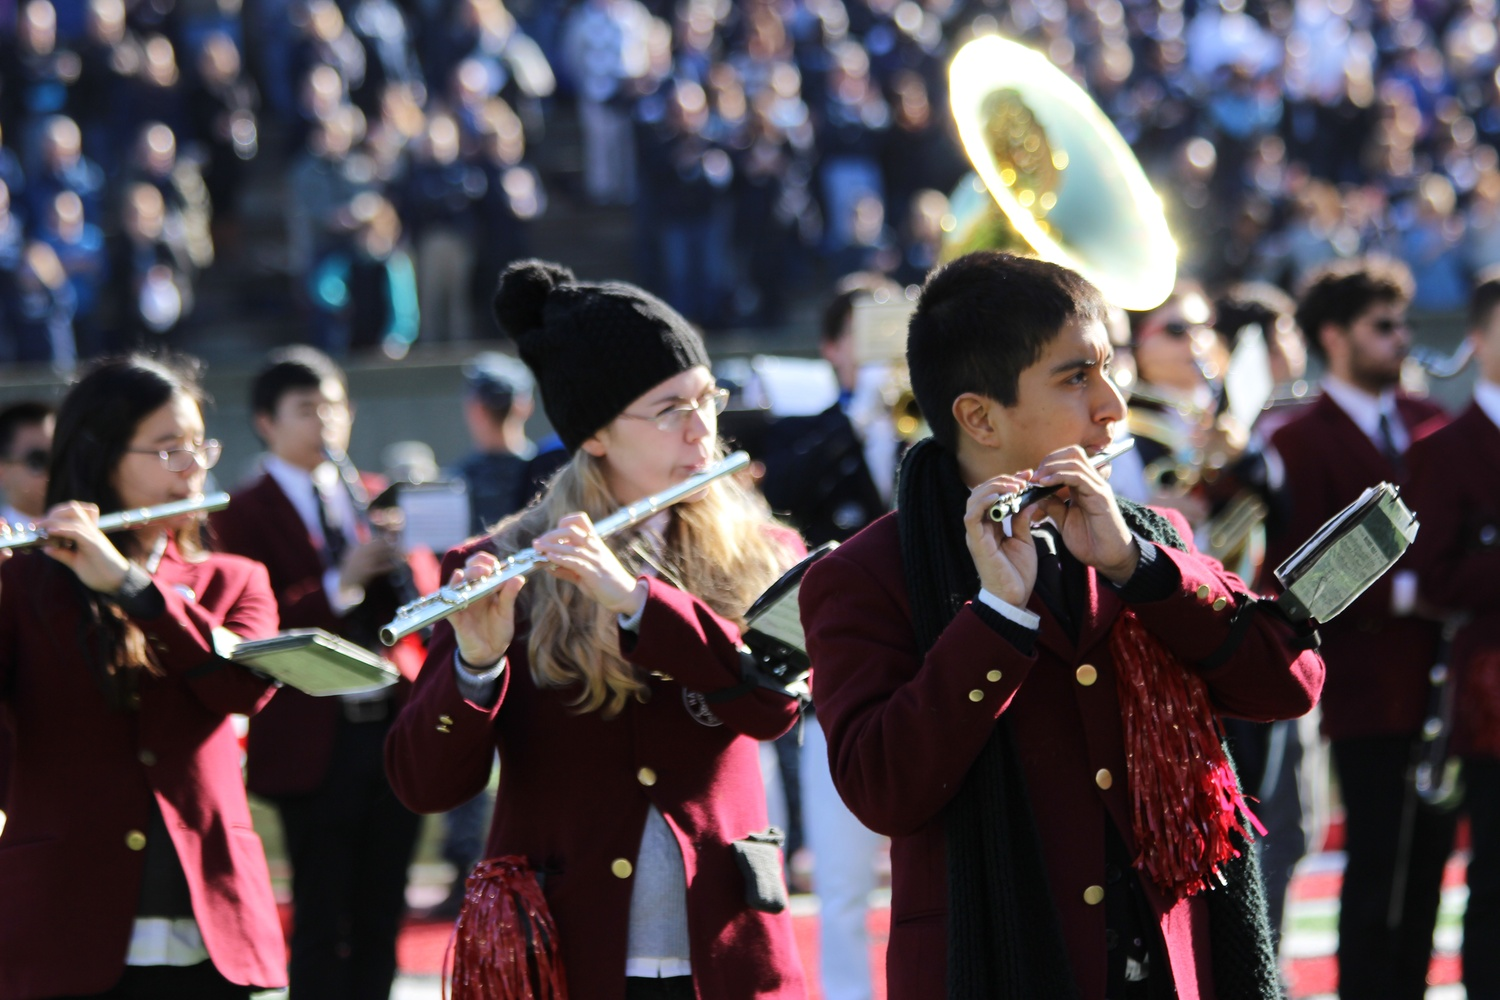 The Harvard Band performing in 2016.